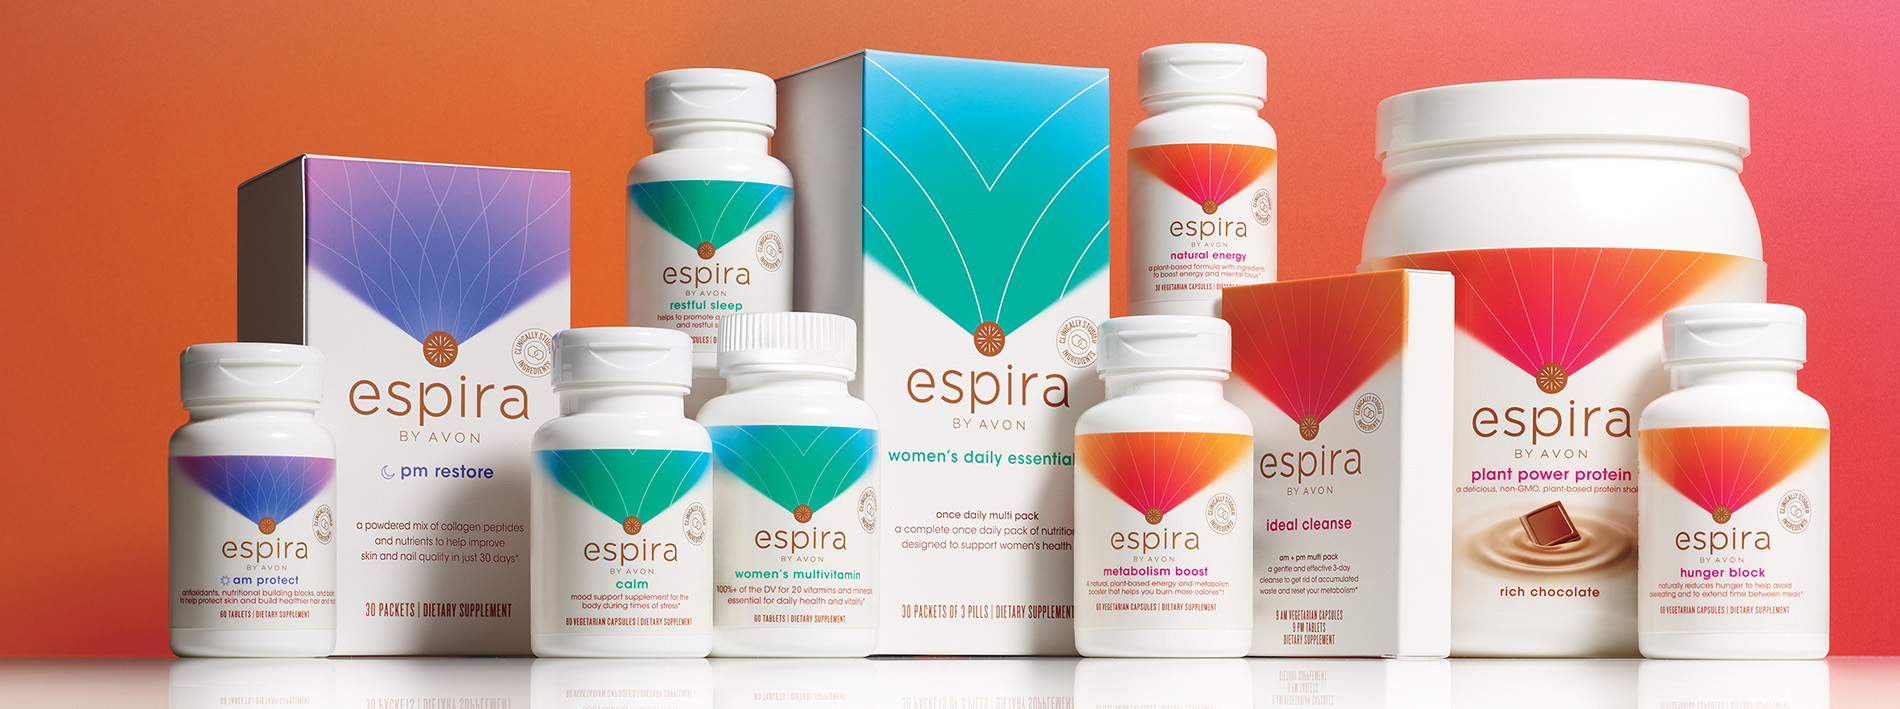 Avon Launches Espira, a New Brand of Health and Wellness ...